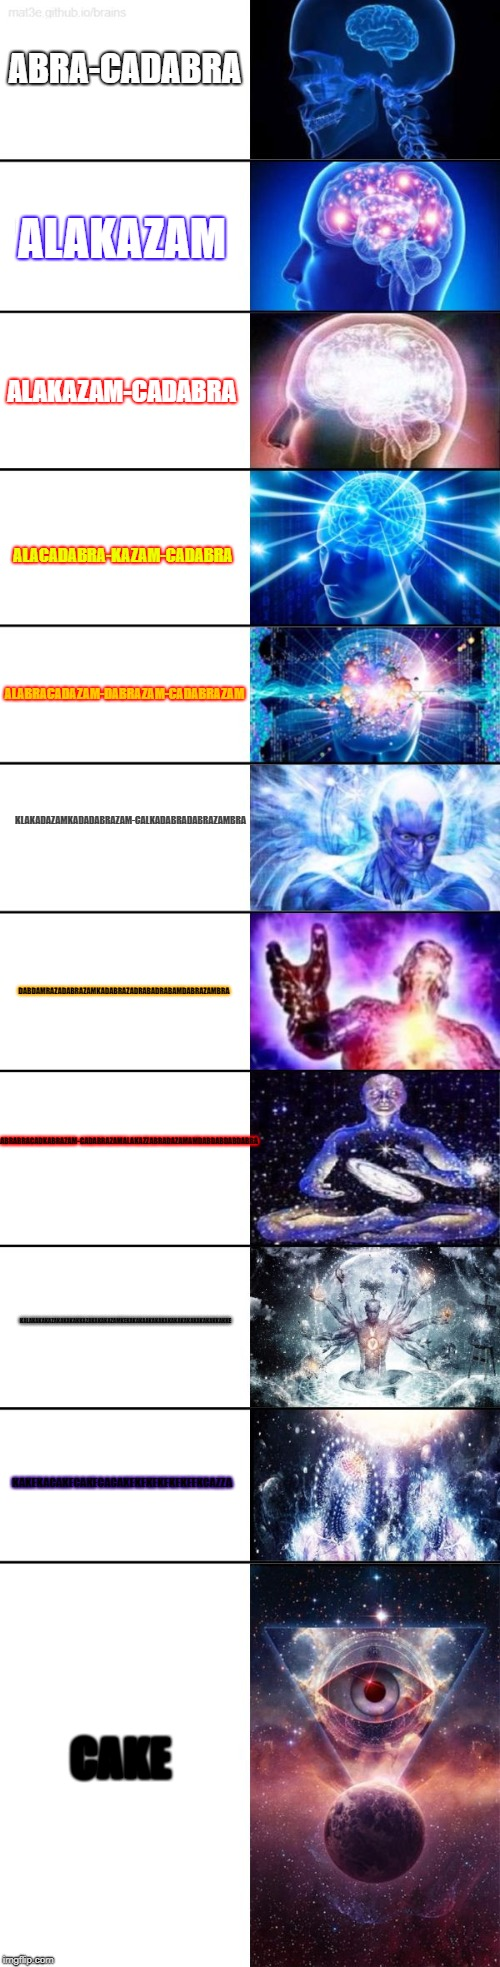 Extended Expanding Brain | ABRA-CADABRA ALACADABRA-KAZAM-CADABRA ALAKAZAM ALAKAZAM-CADABRA ALABRACADAZAM-DABRAZAM-CADABRAZAM KLAKADAZAMKADADABRAZAM-CALKADABRADABRAZAMB | image tagged in extended expanding brain | made w/ Imgflip meme maker